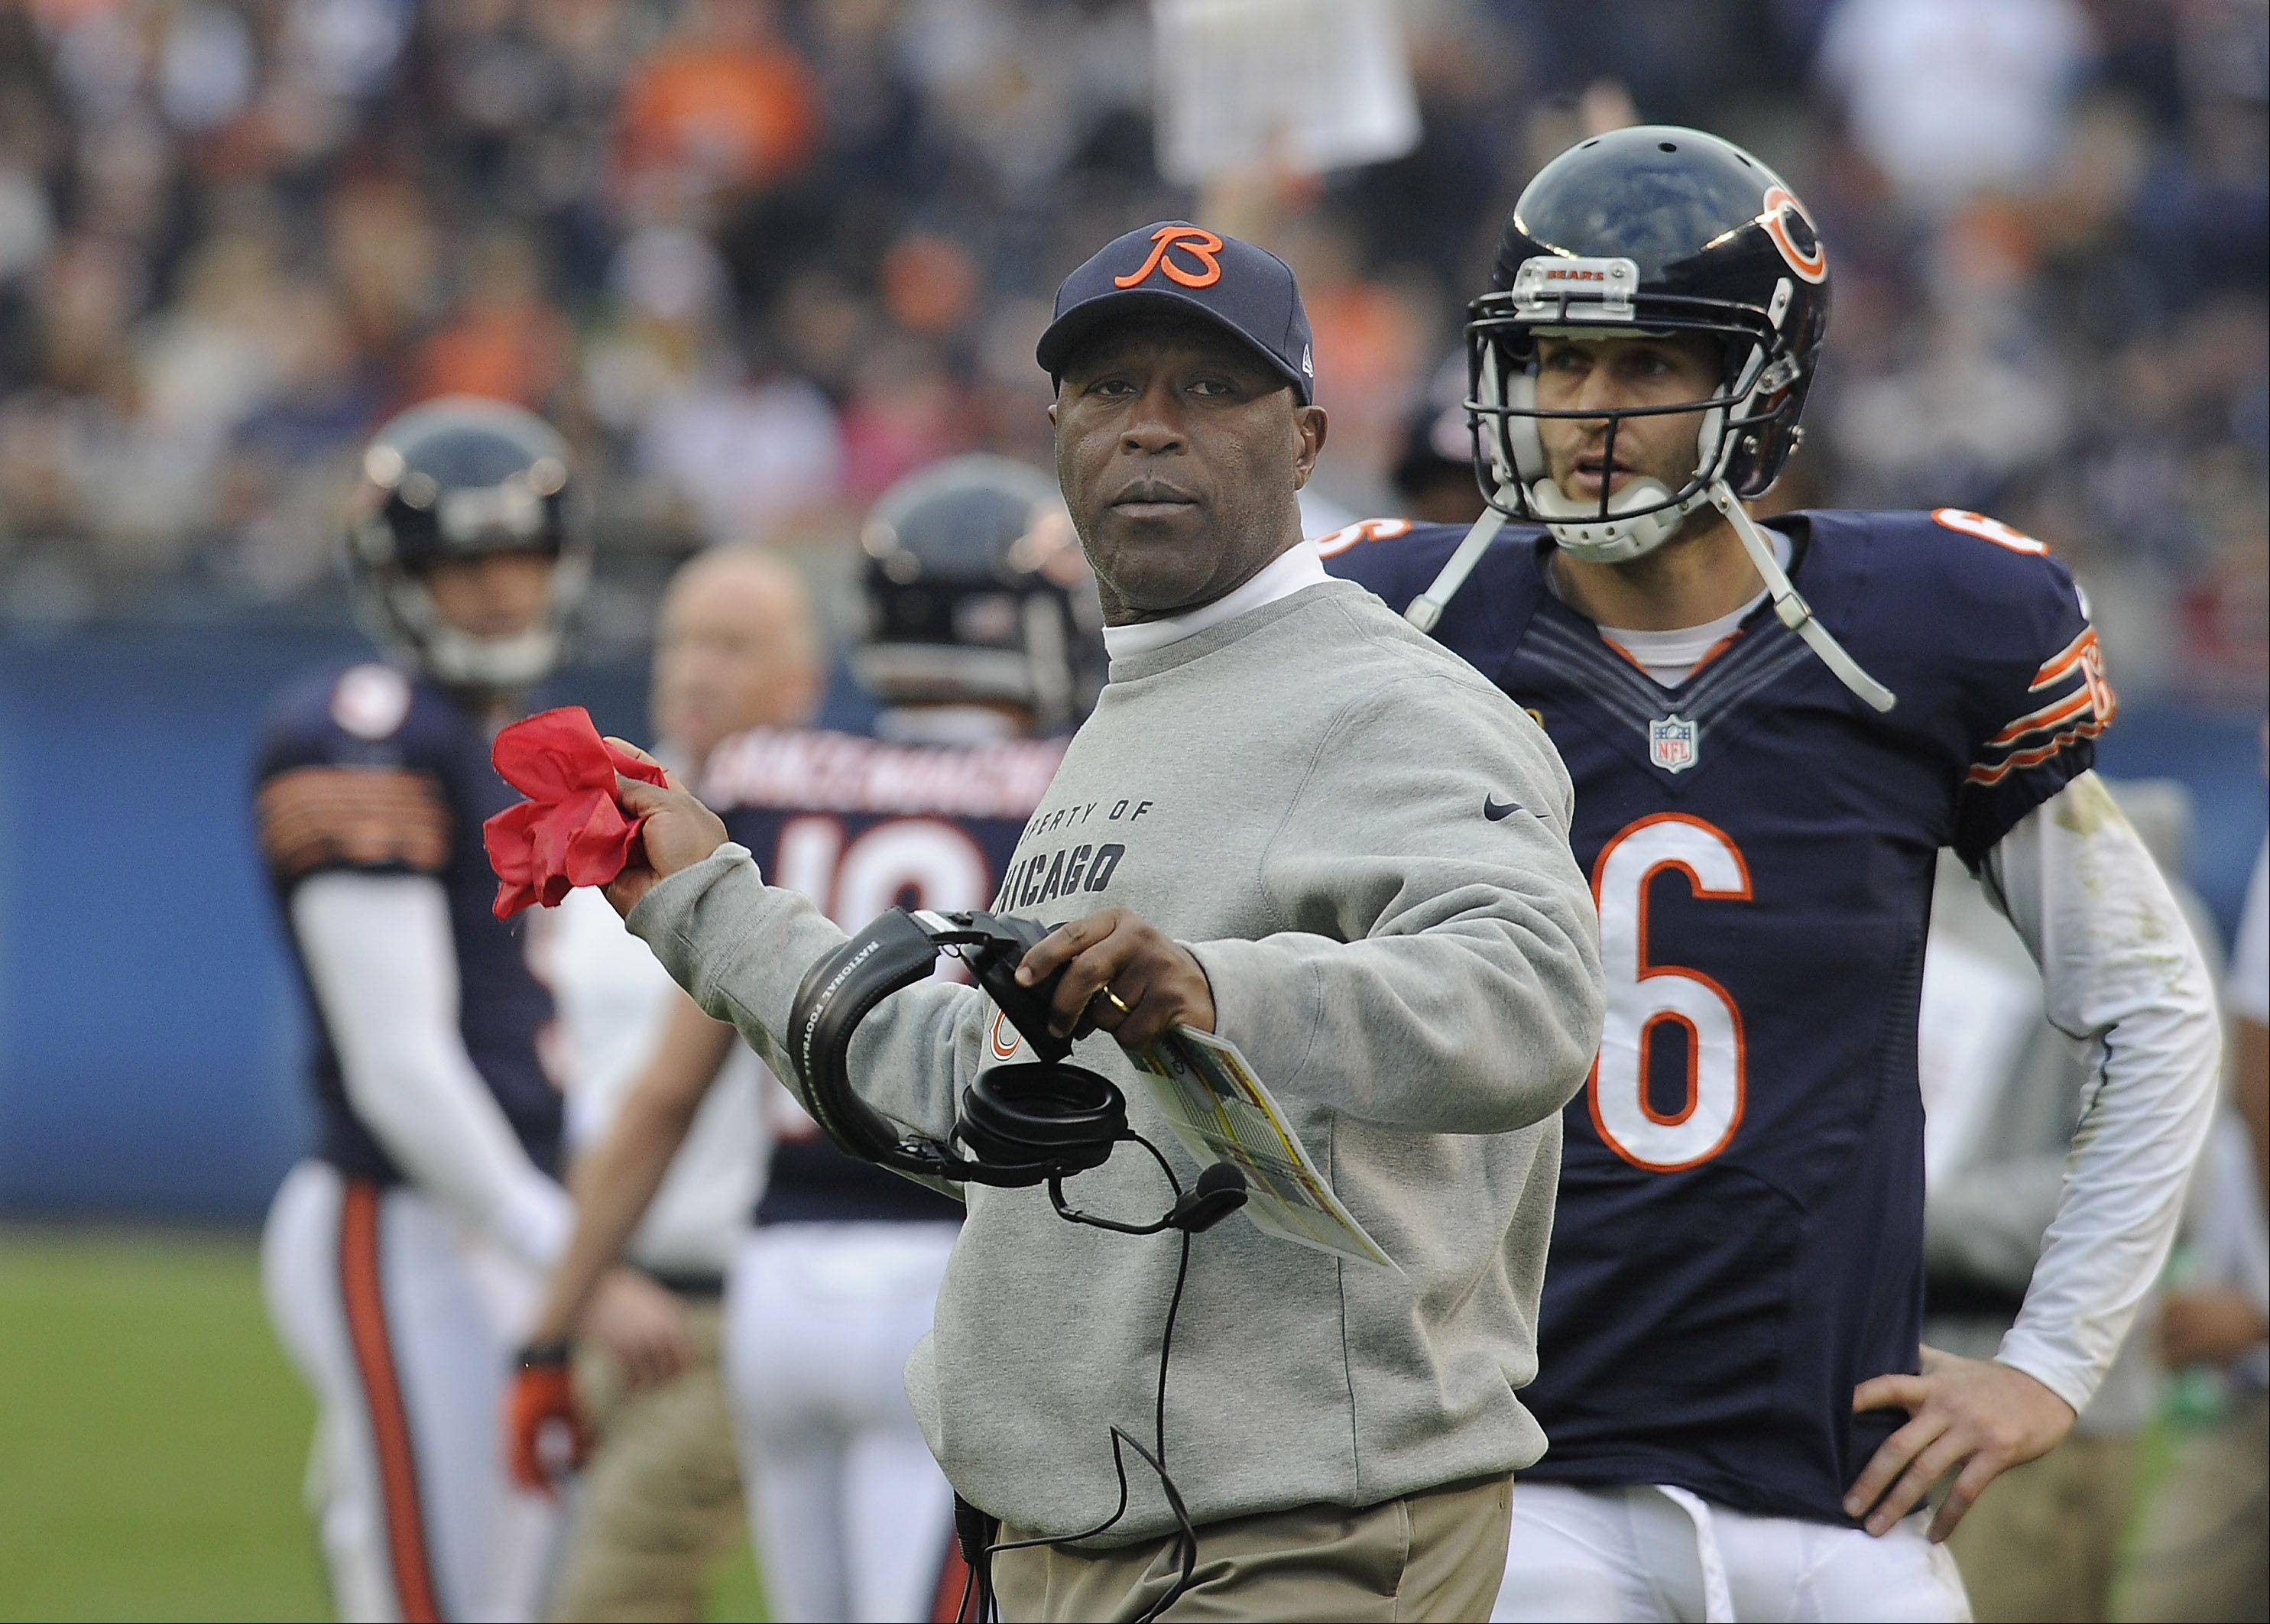 Bears coach Lovie Smith prepares to throw the challenge flag concerning a Seahawks touchdown in the fourth in the Bears loss to the Seahawks at Soldier Field in Chicago.